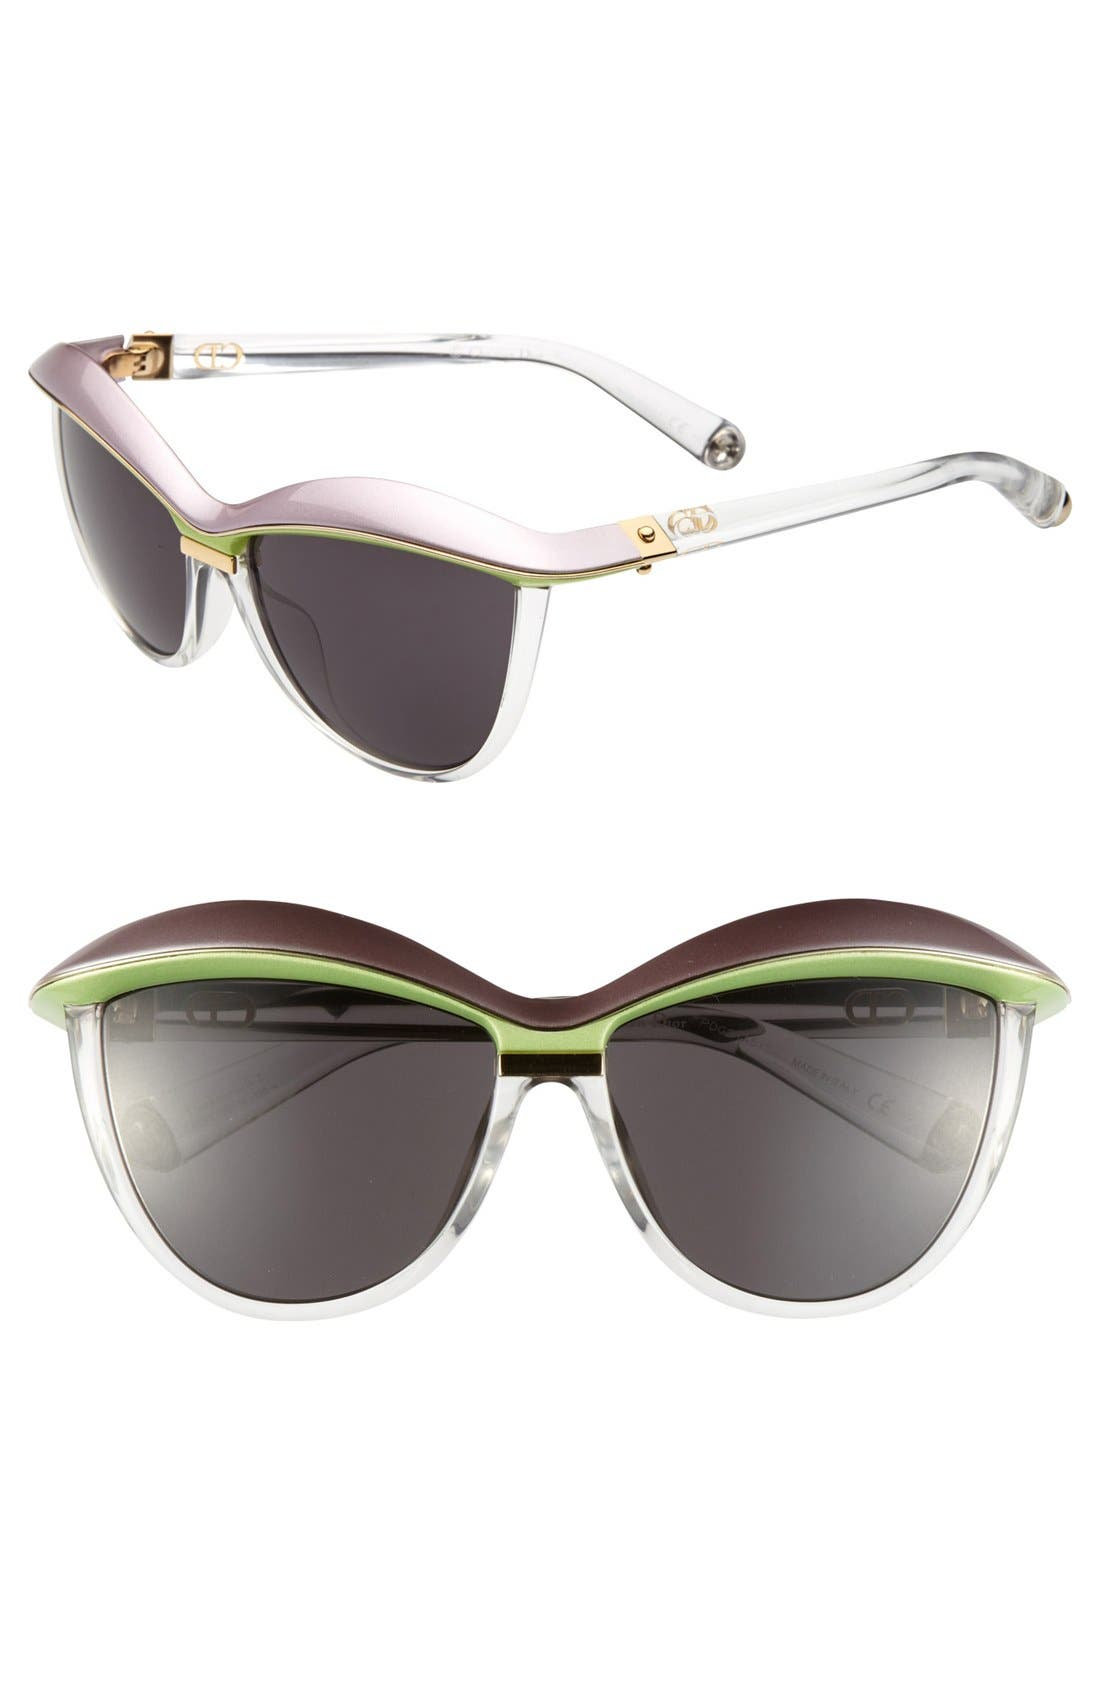 Main Image - Dior 'Demoiselle 2' 58mm Retro Sunglasses